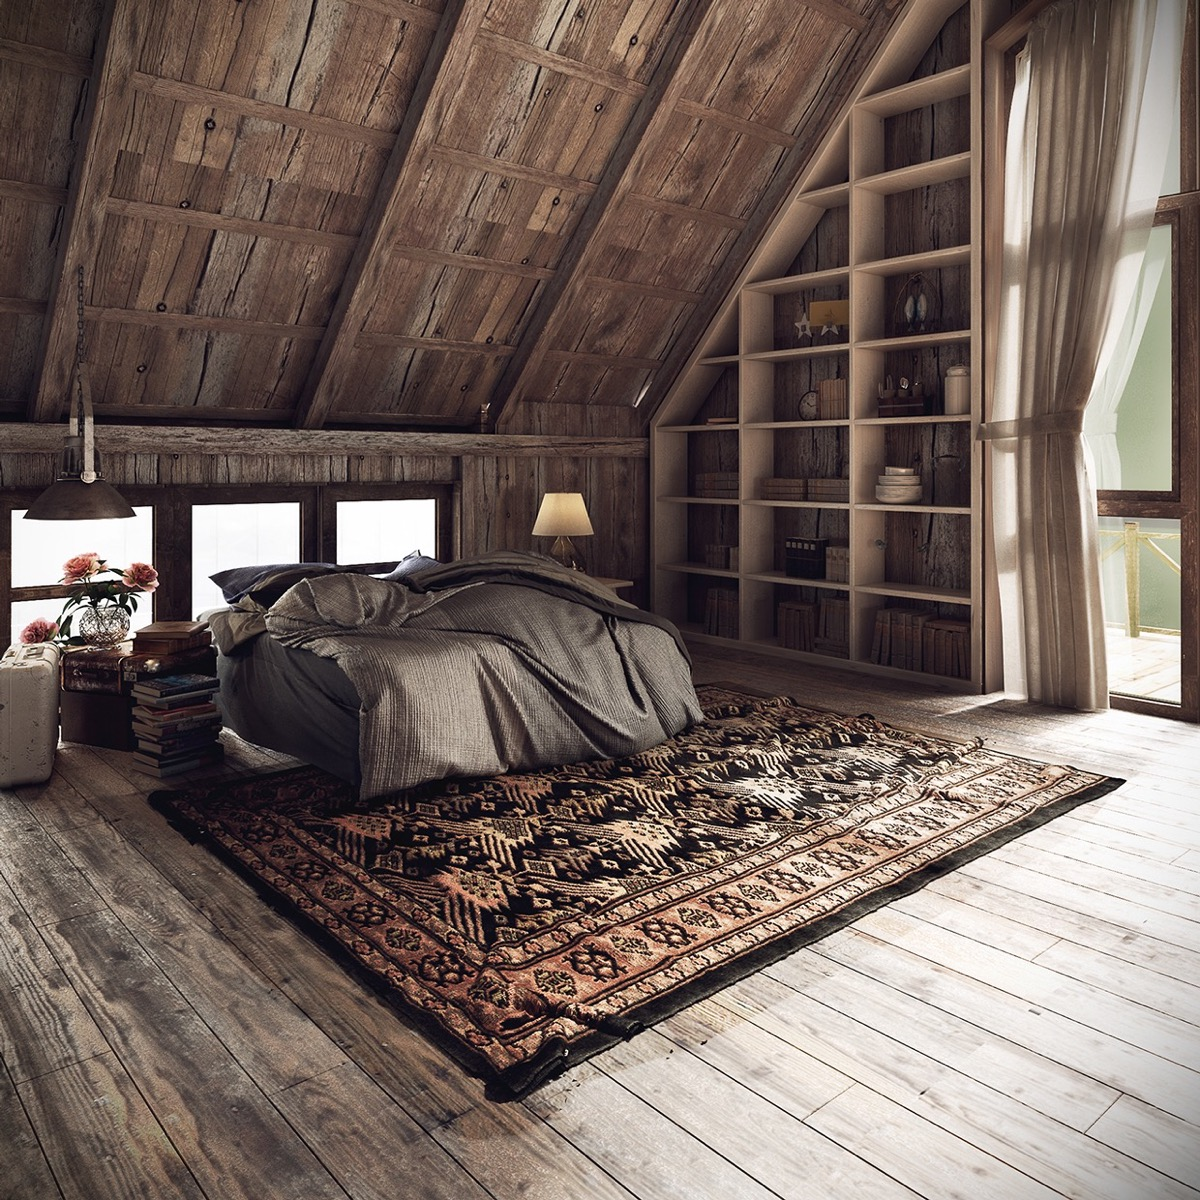 Rustic Bedrooms: Guide And Inspiration For Designing Them images 29